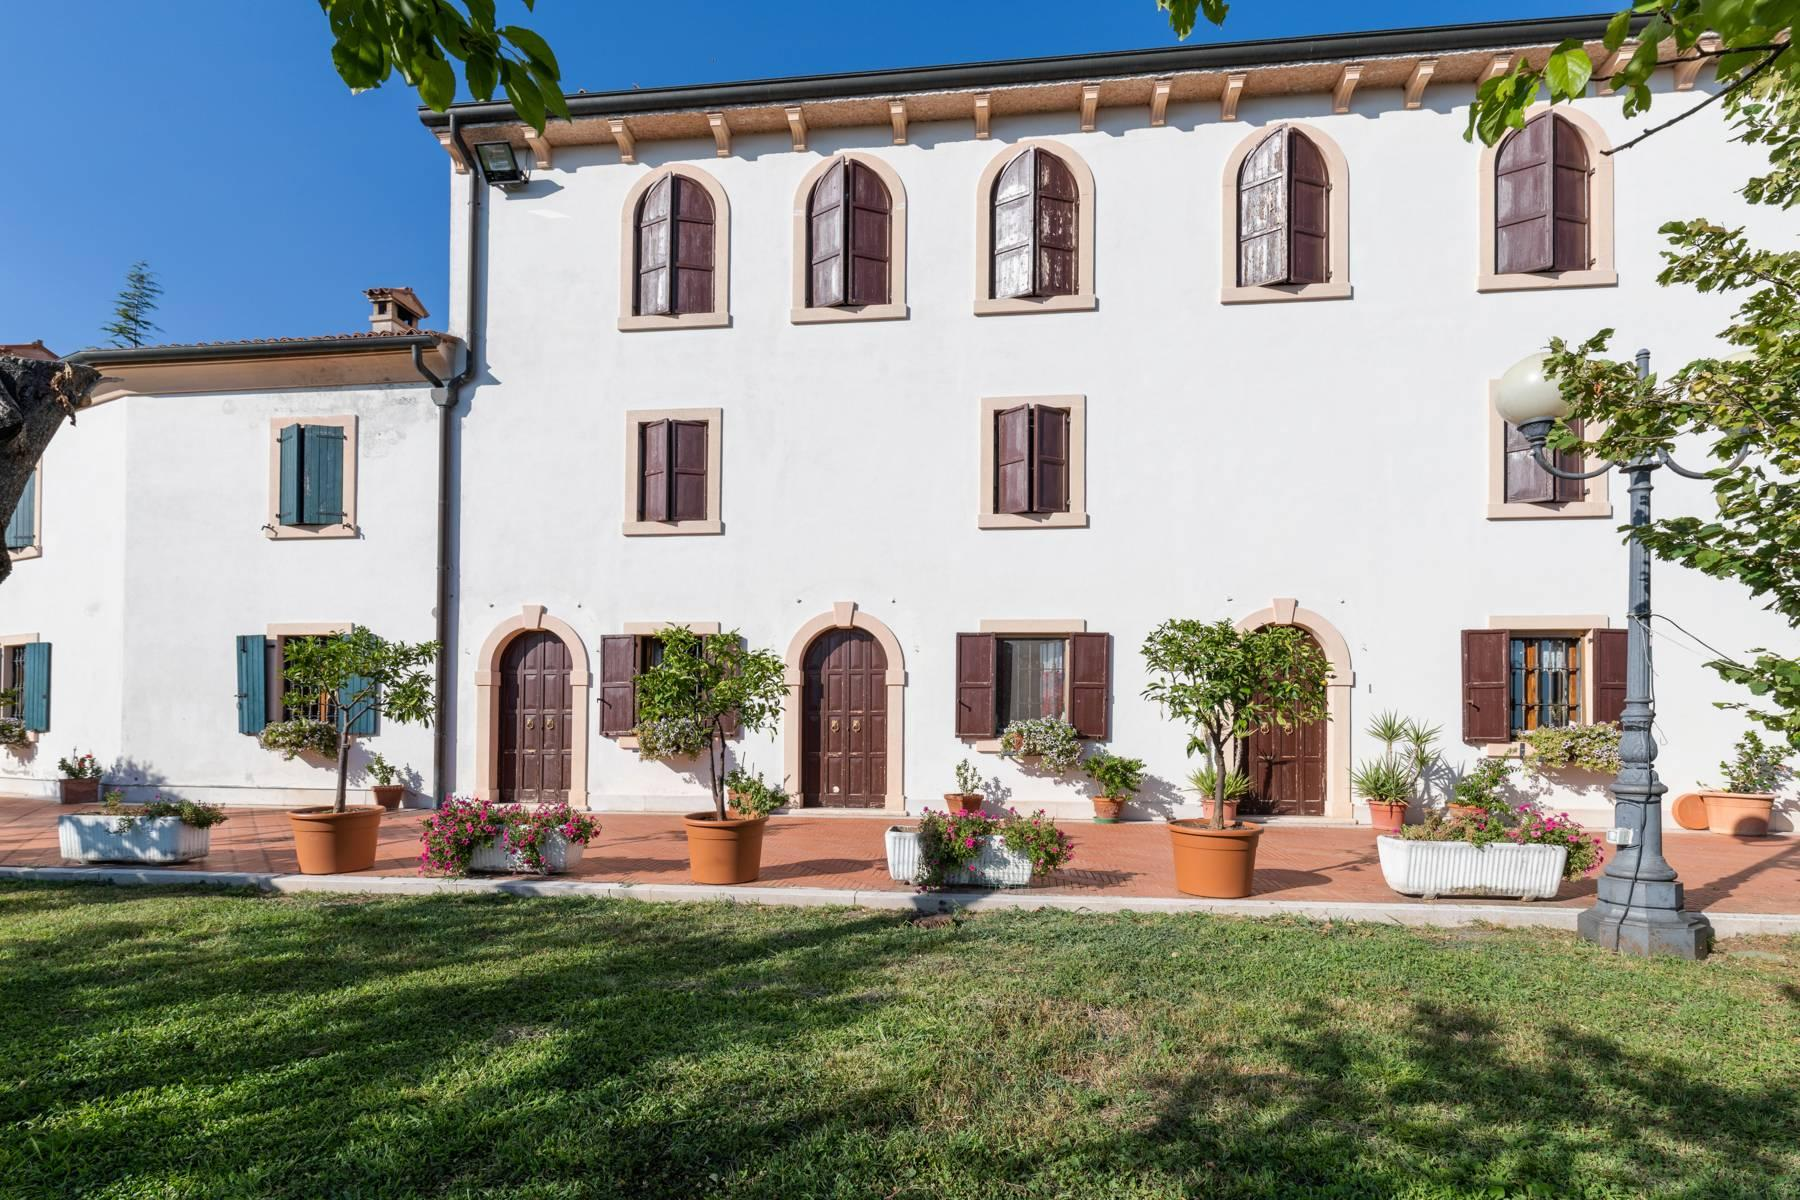 Historic country villa with swimming pool, tennis court and estate on the hills of Verona - 5